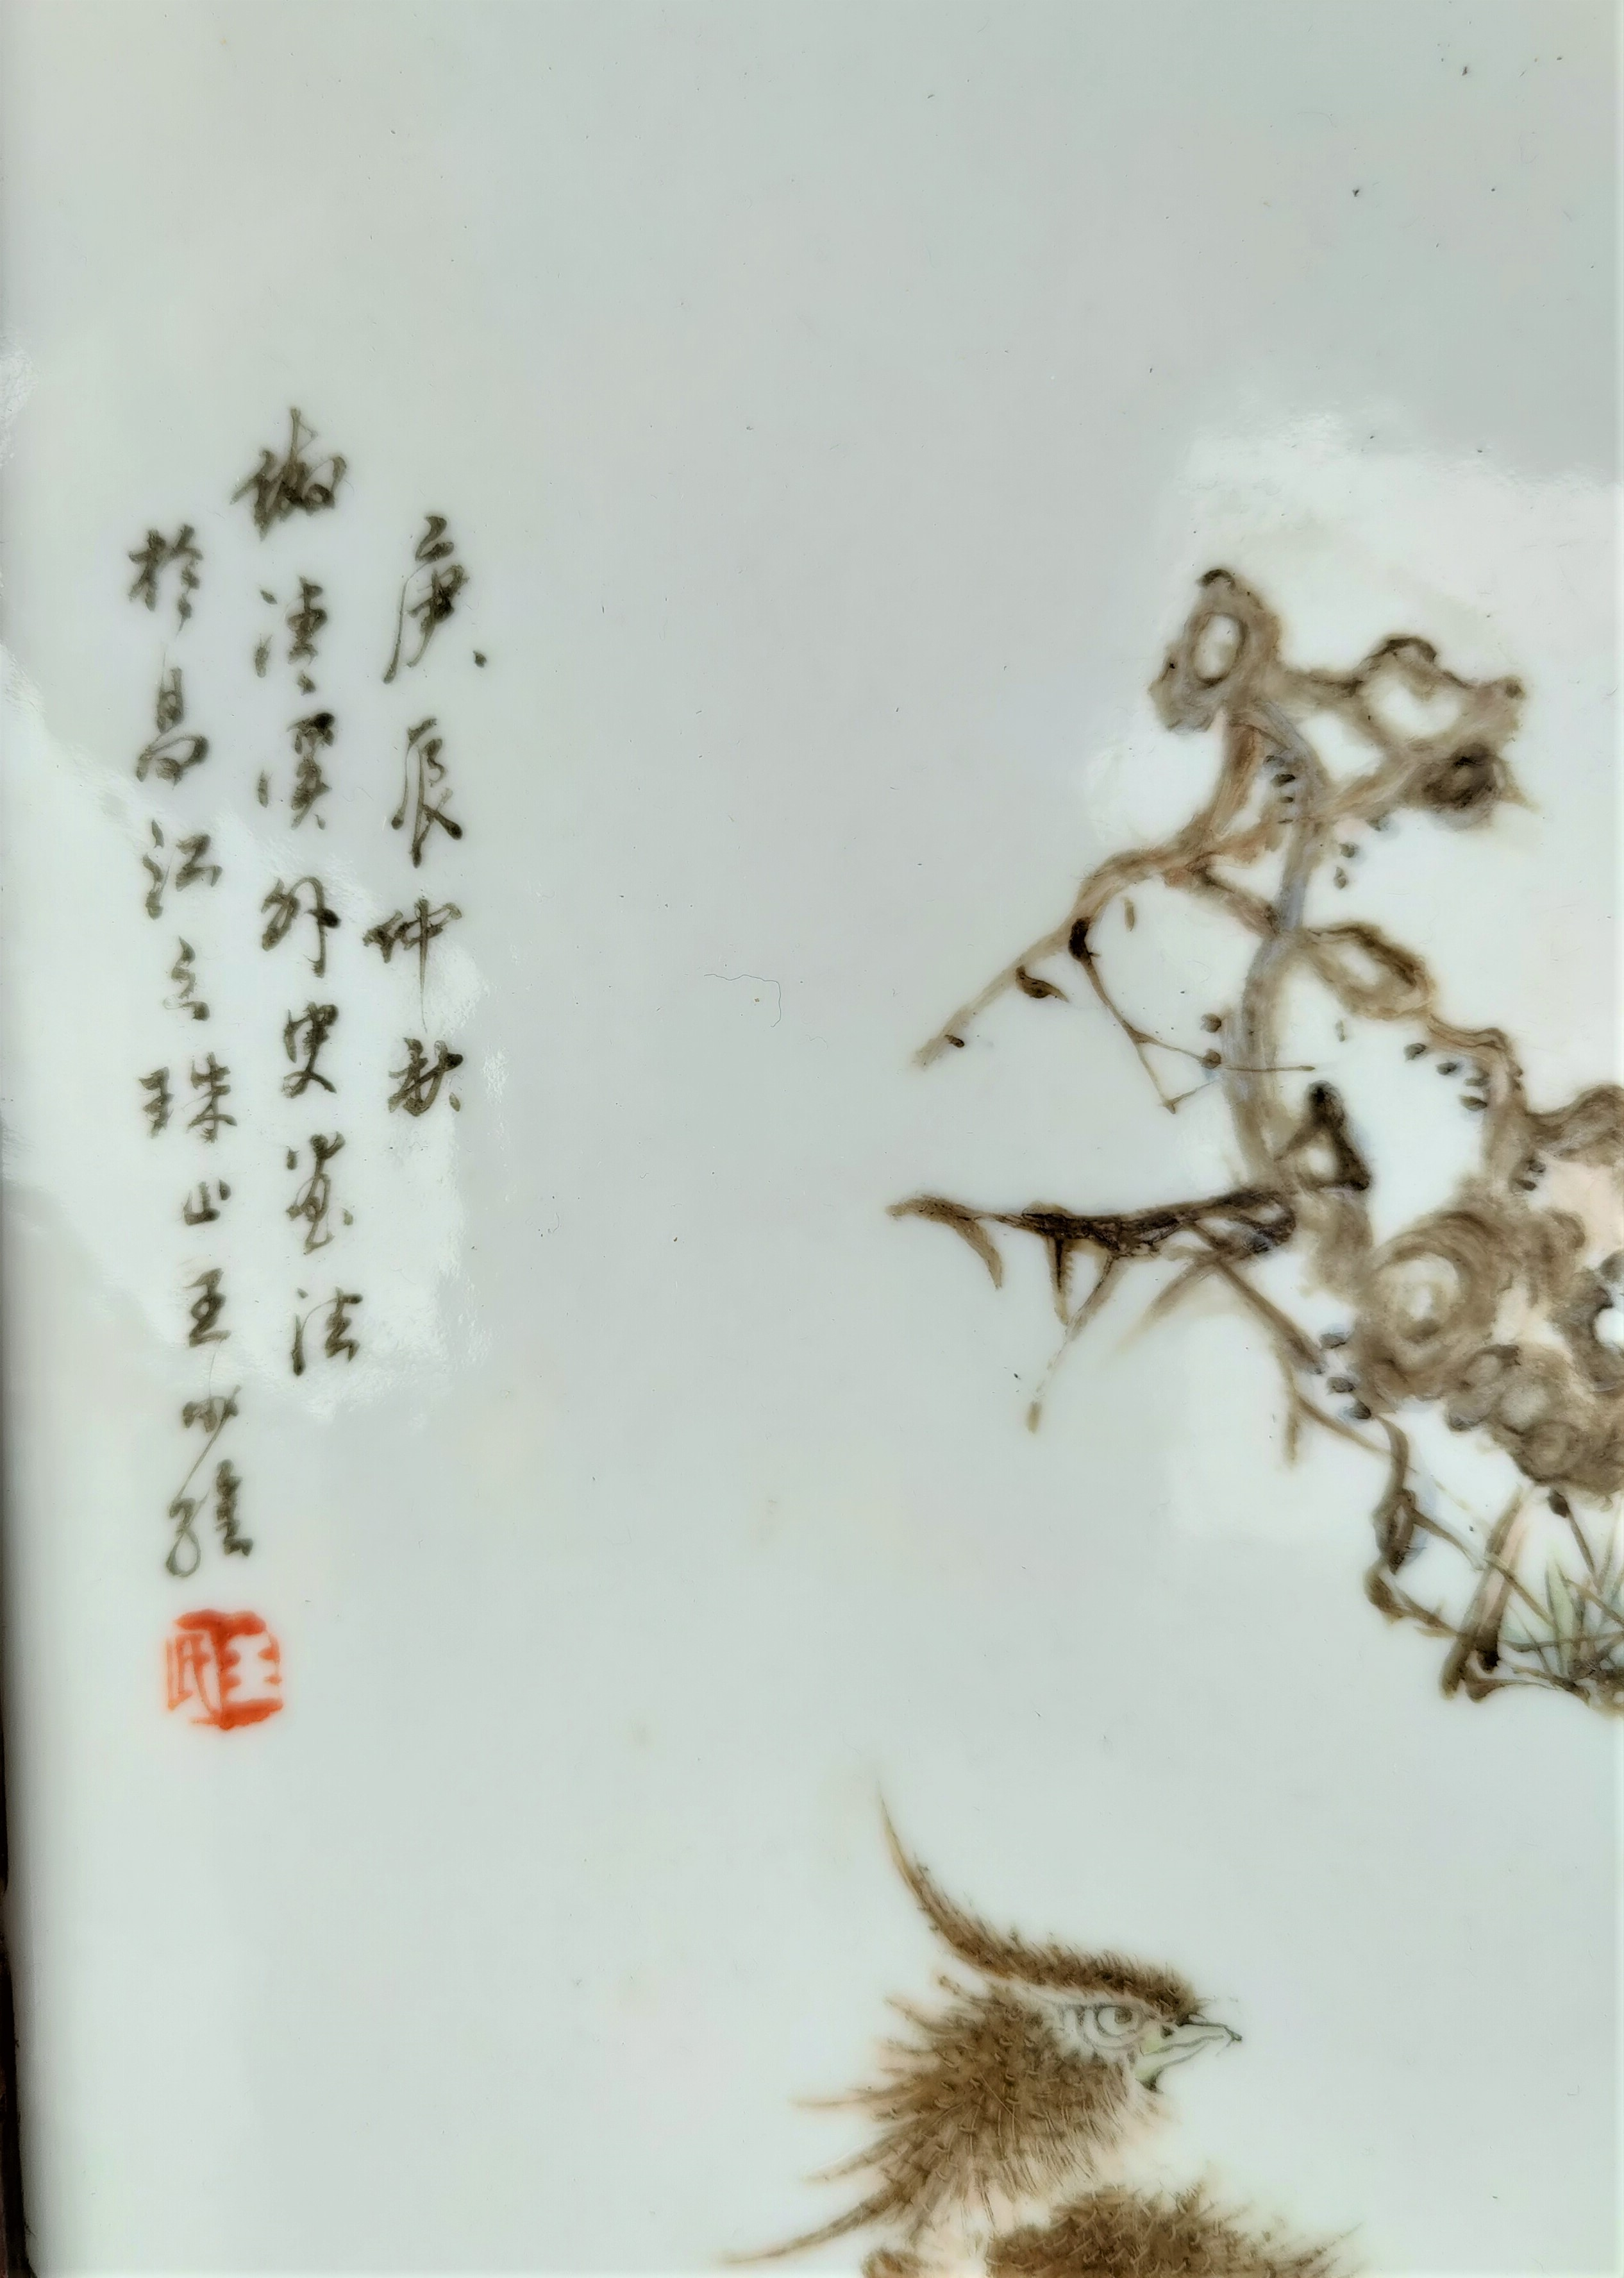 A Chinese Republic Period handpained ceramic tile of a bird on a branch, wooden frame, with - Image 3 of 4